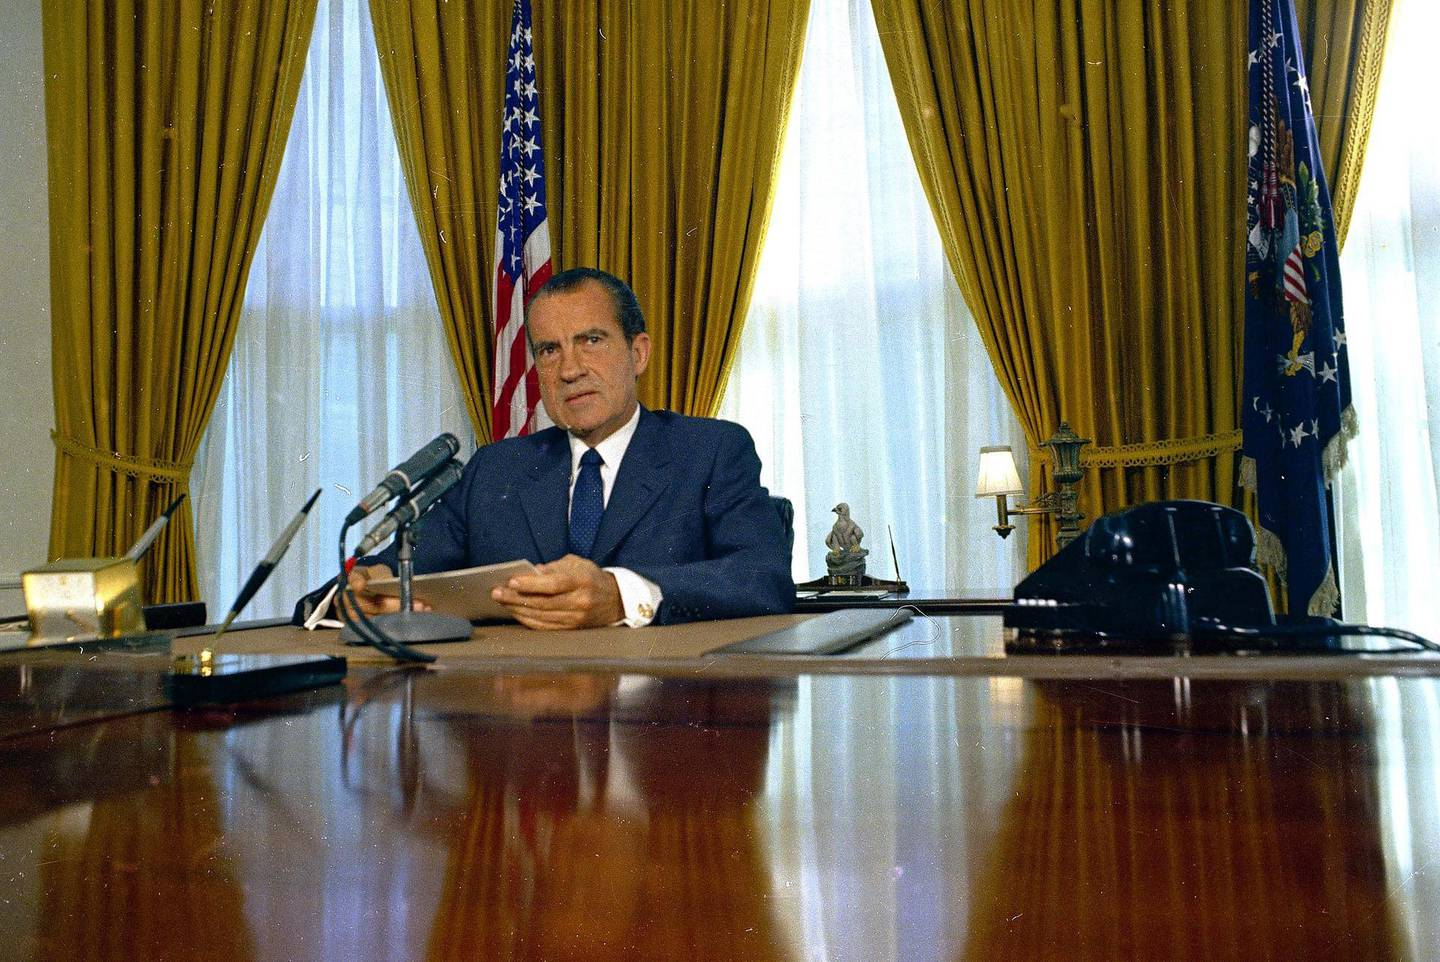 President Richard Nixon is seen in the Oval Office of the White House, 1969.  (AP Photo)